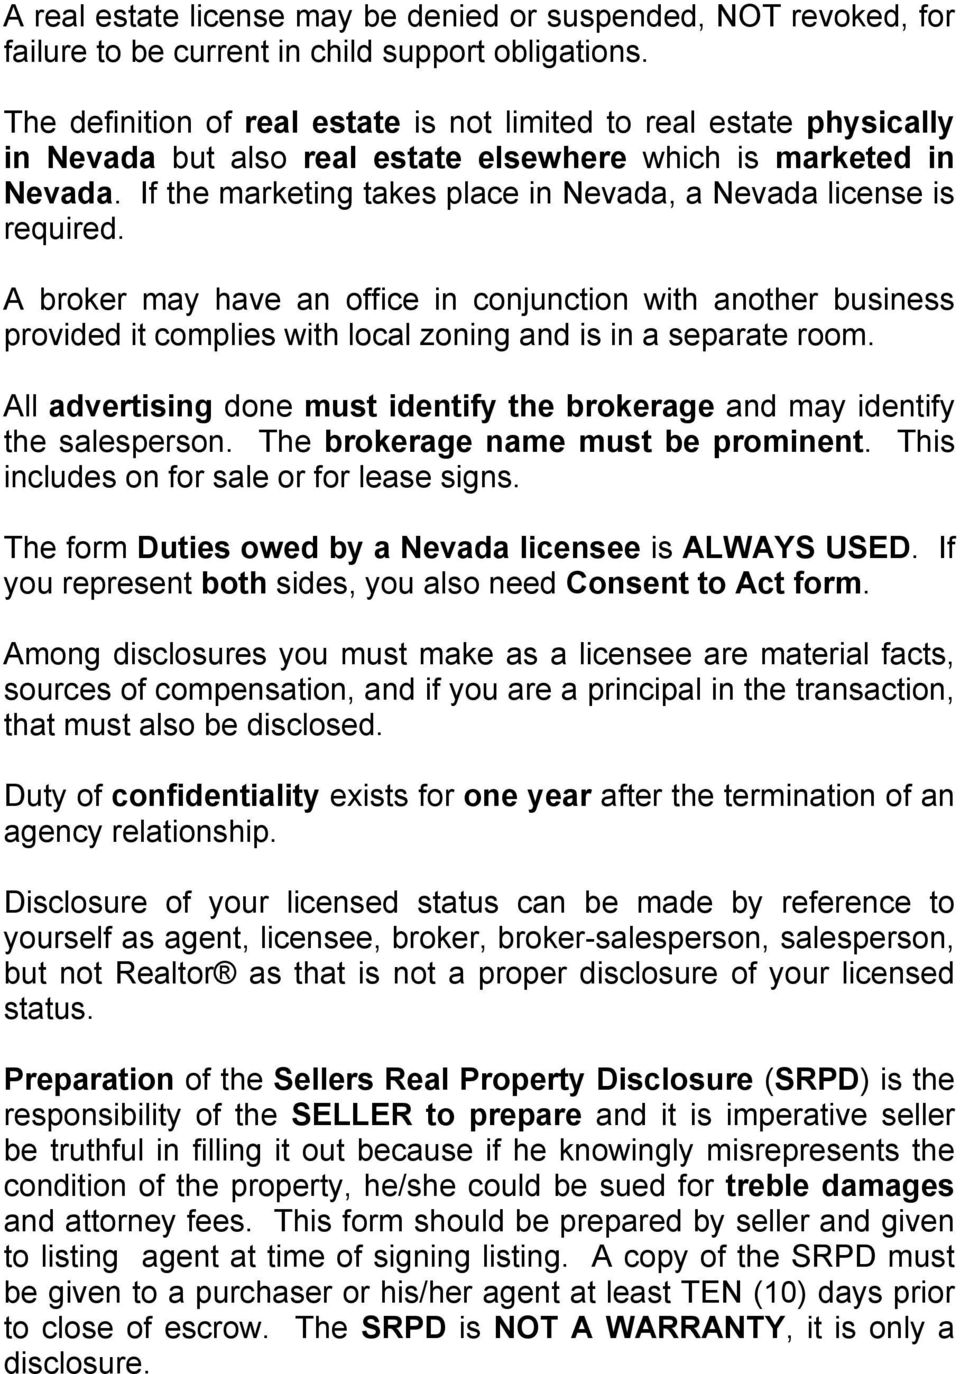 If the marketing takes place in Nevada, a Nevada license is required. A broker may have an office in conjunction with another business provided it complies with local zoning and is in a separate room.